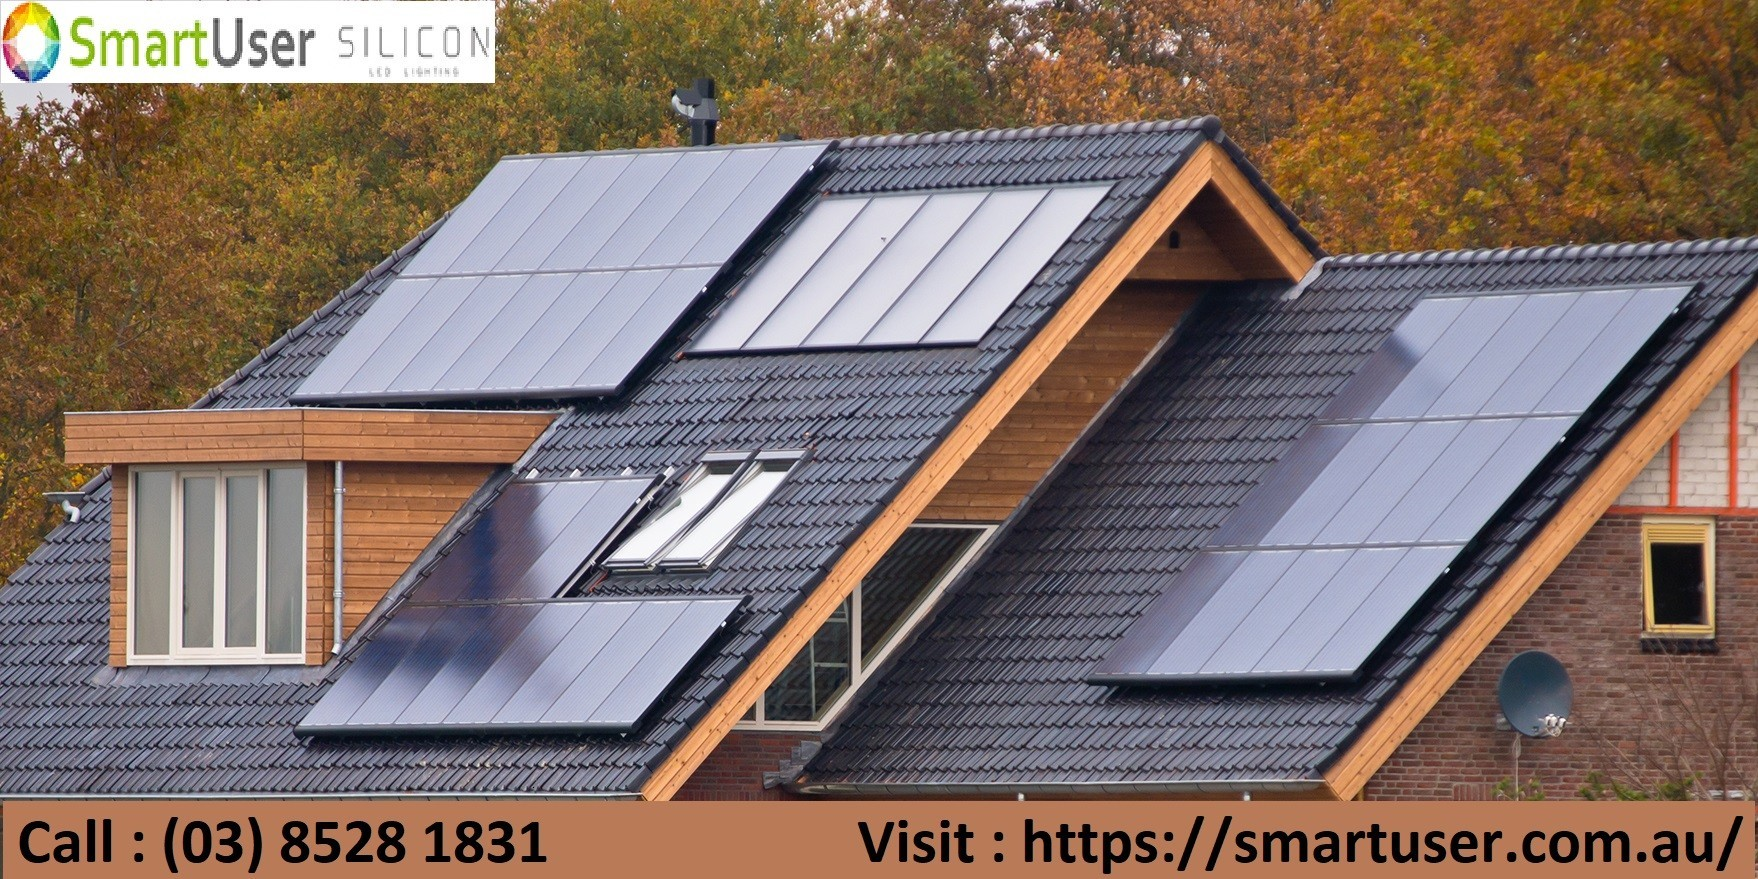 Seeking for Solar Panel Installation in Melbourne